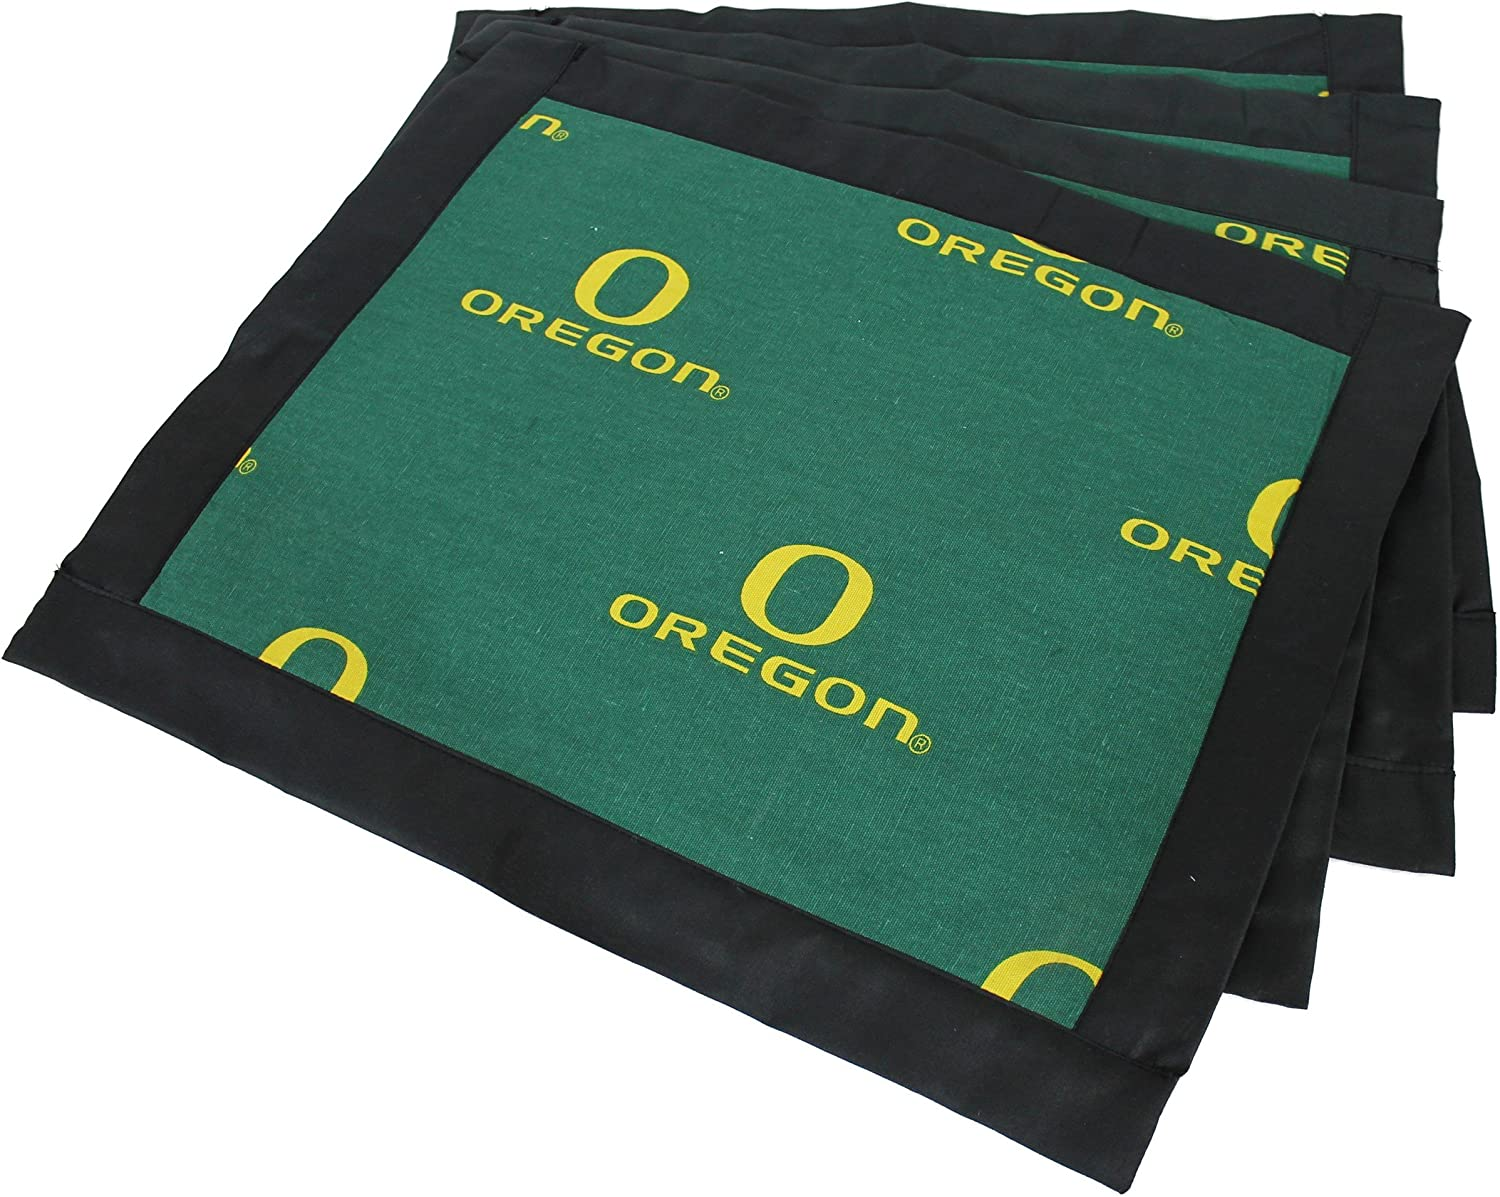 College Covers Oregon Ducks Placemat with Border (Set  of 4)